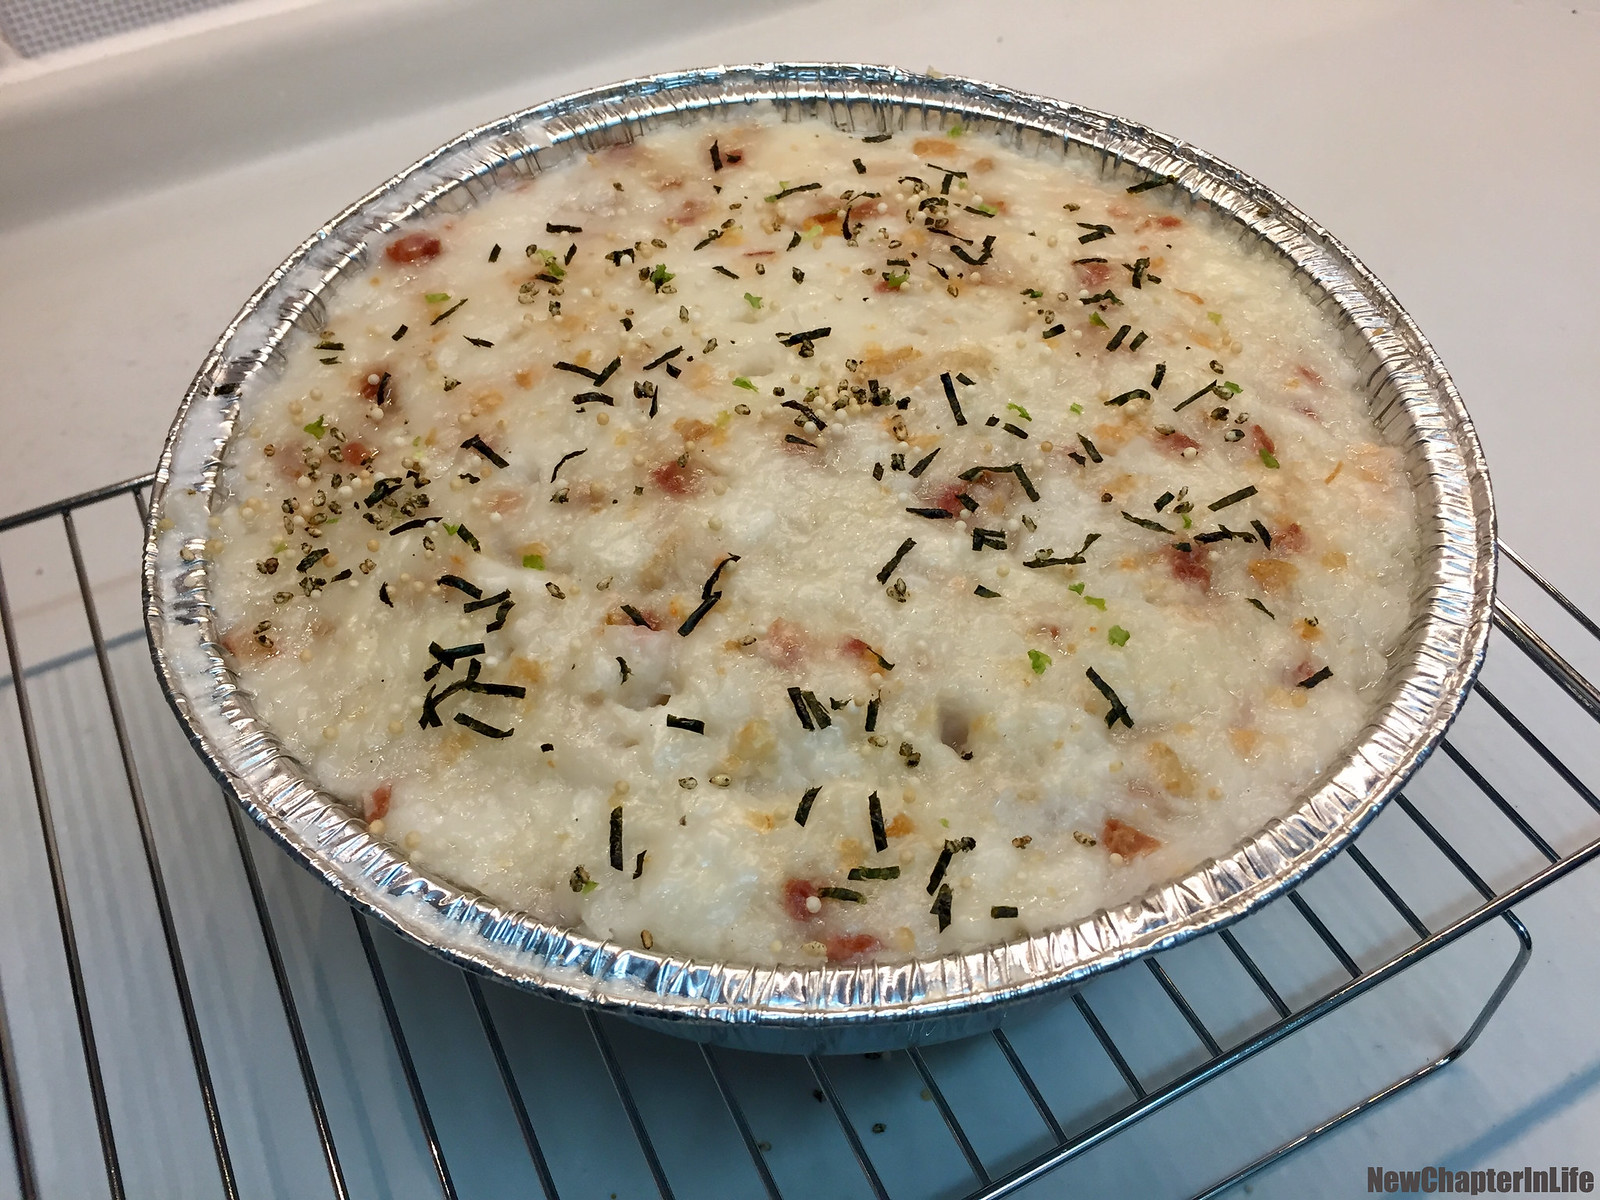 Exotic flavor Turnip Rice Pudding 另類風味蒸蘿蔔糕